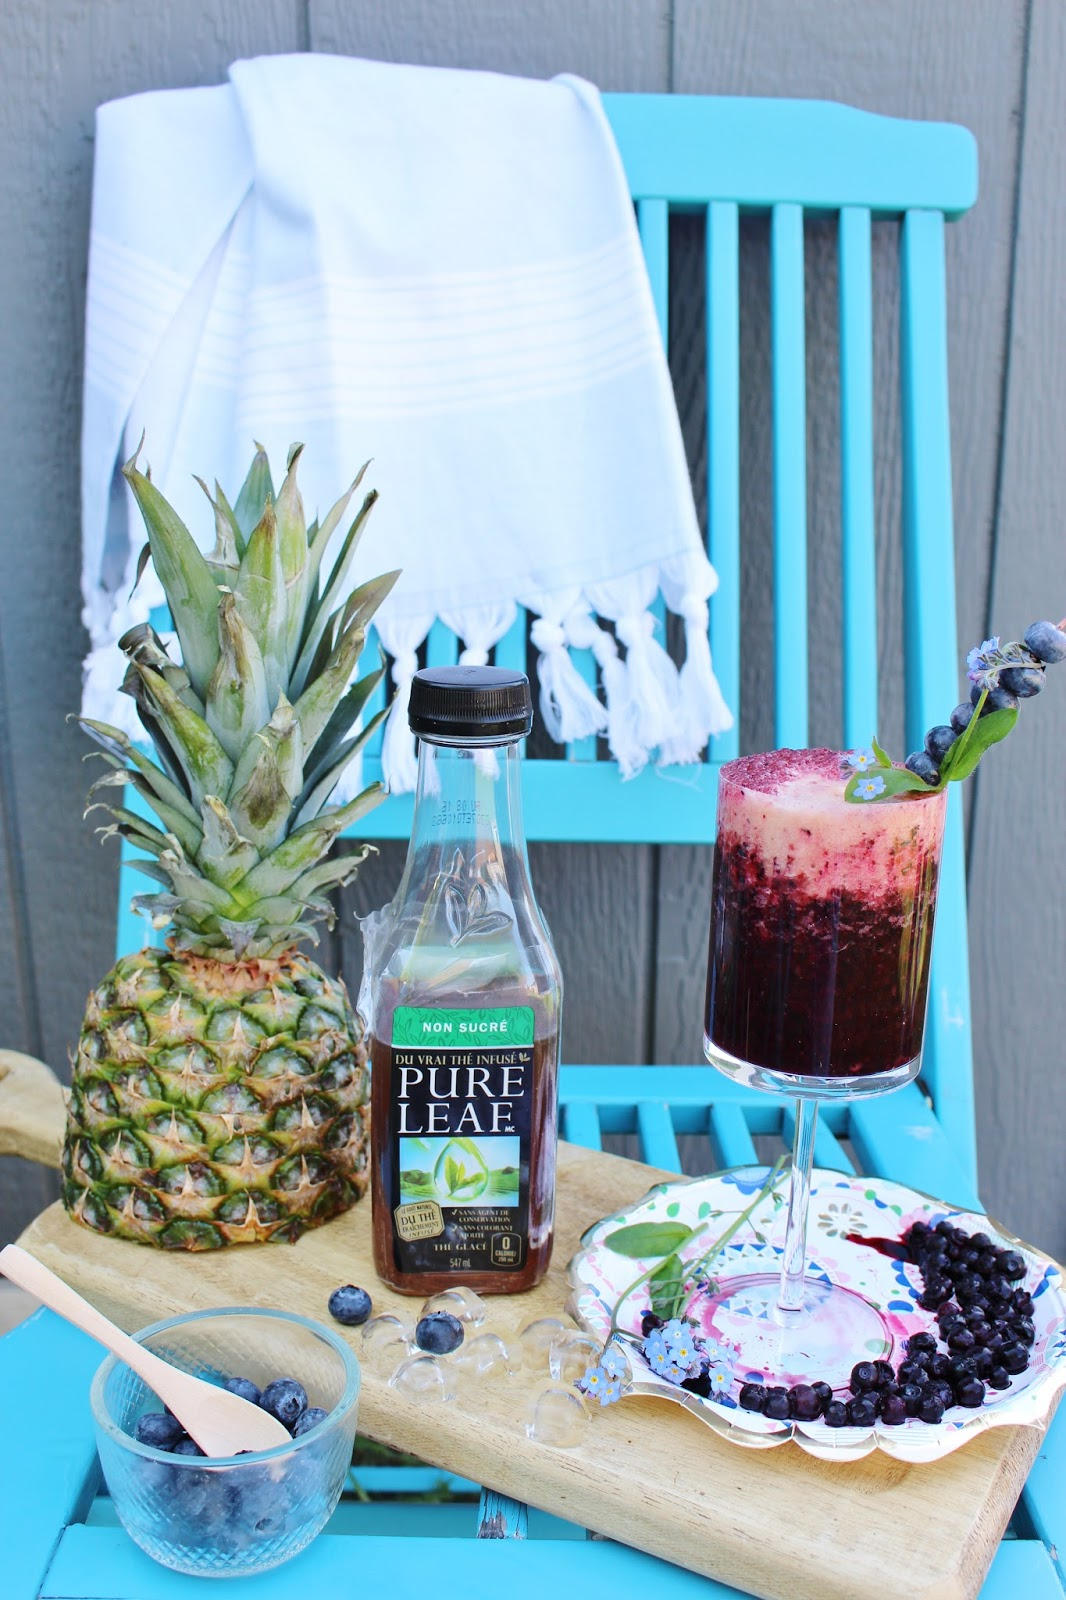 Pure leaf unsweetened iced tea recipes - blueberry tea puree with vodka